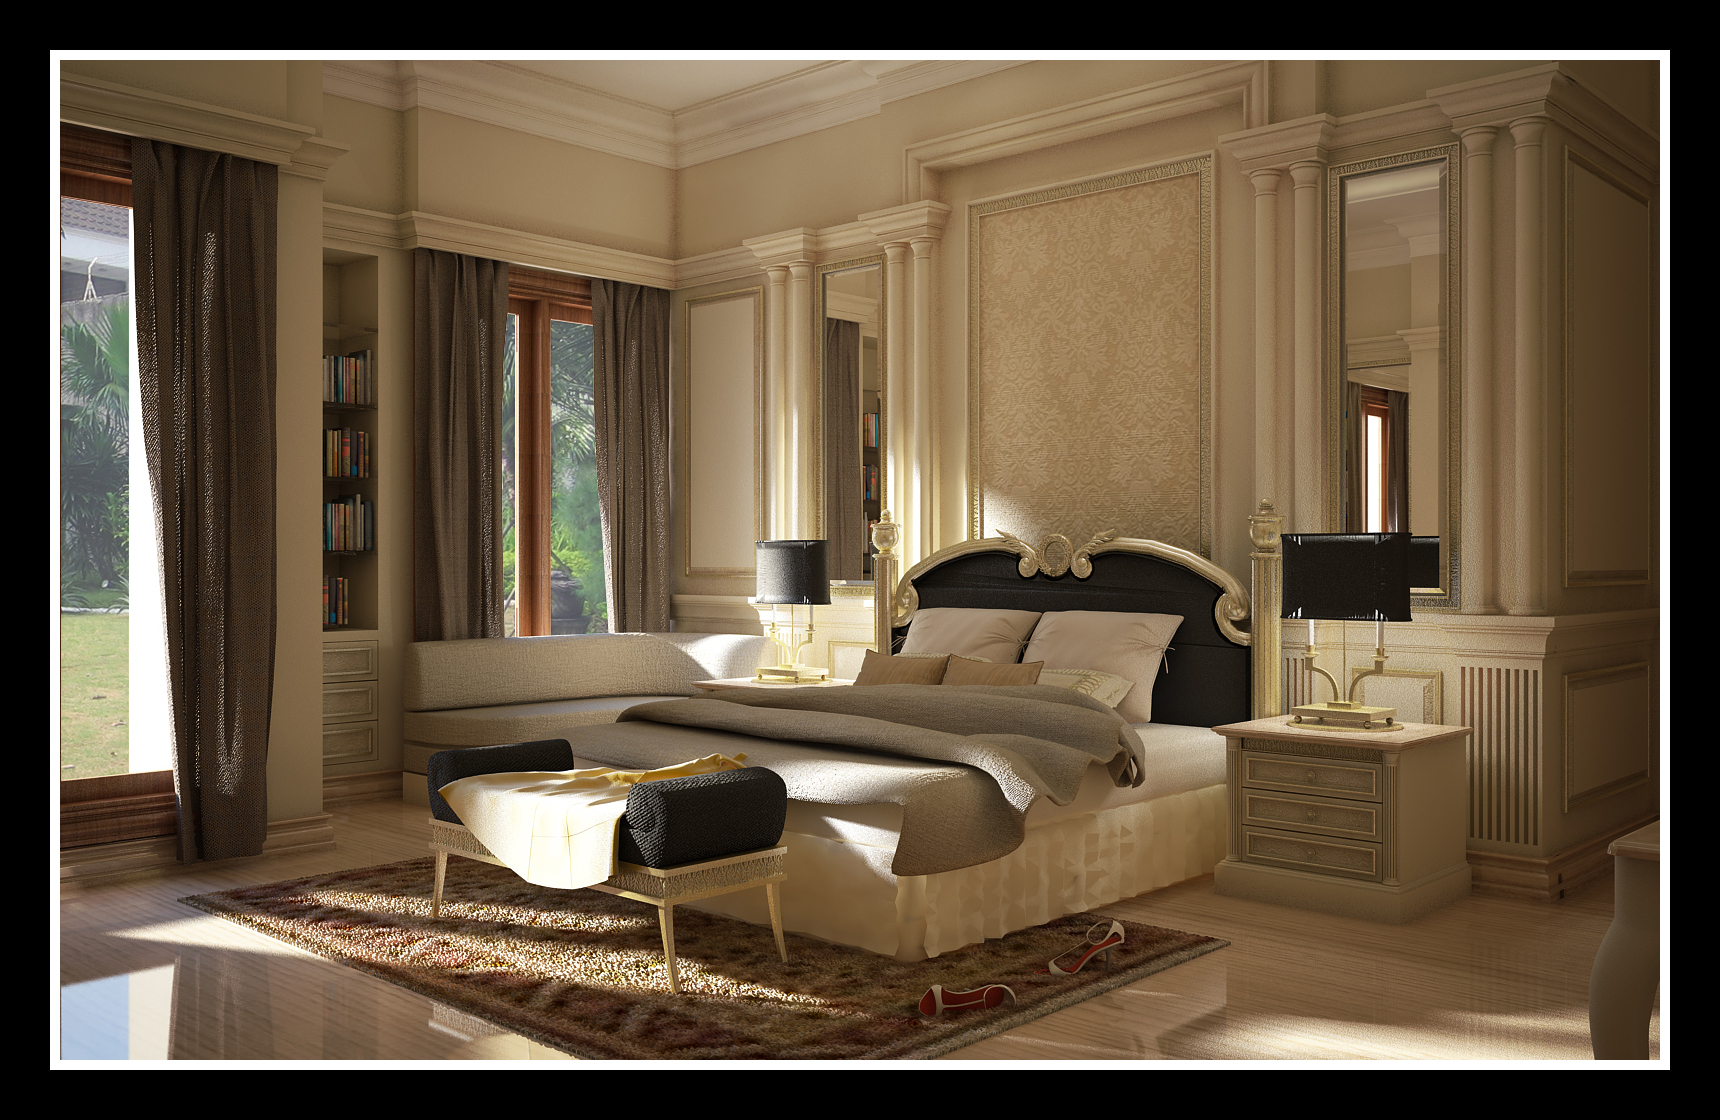 Excellent Classic Bedroom Design Ideas 1720 x 1120 · 1344 kB · jpeg